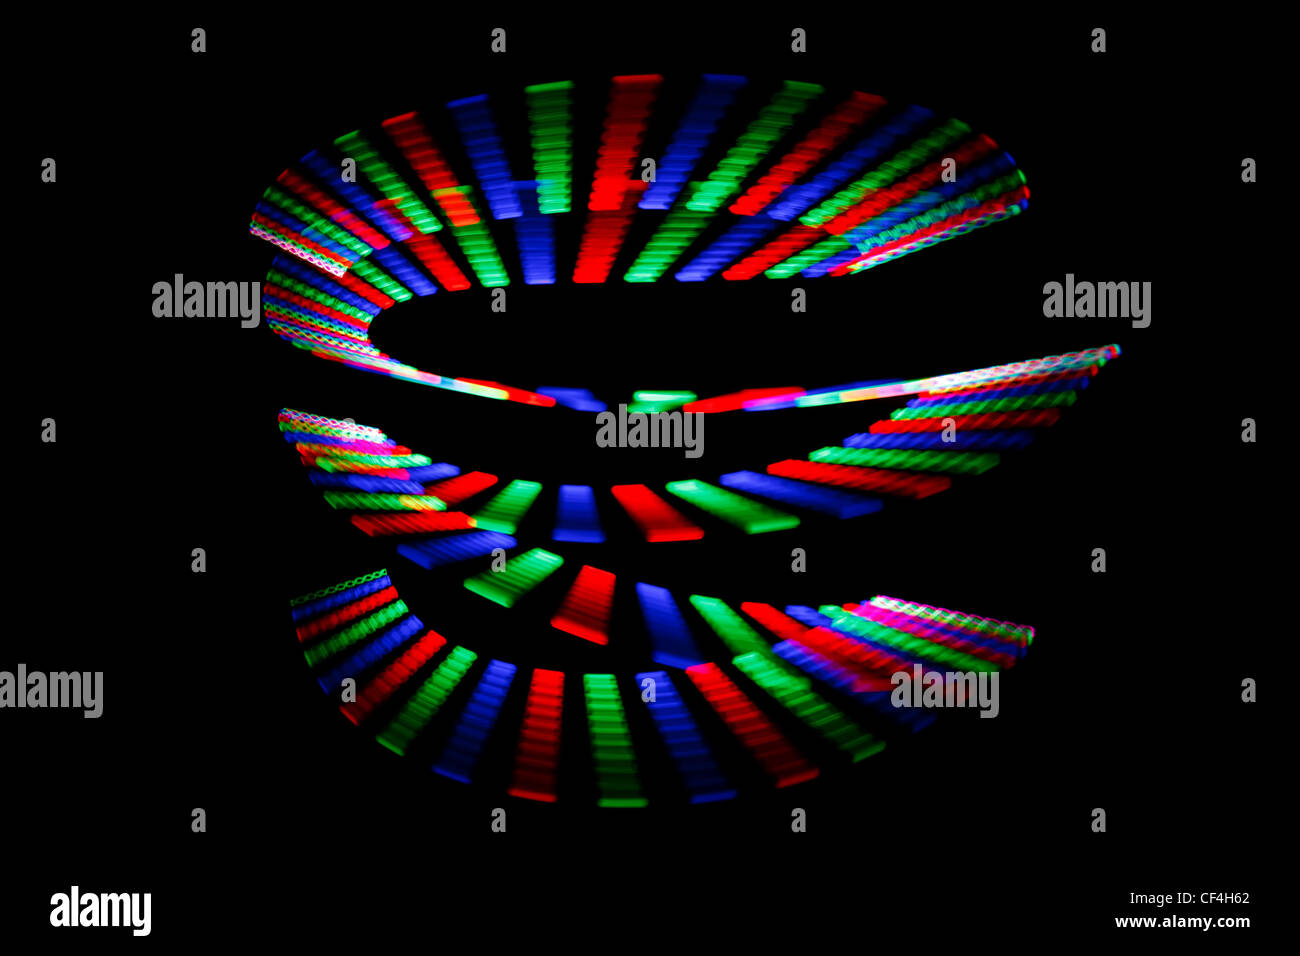 Luminous colors of rainbow trail in form of spiral on black background. Isolated. - Stock Image